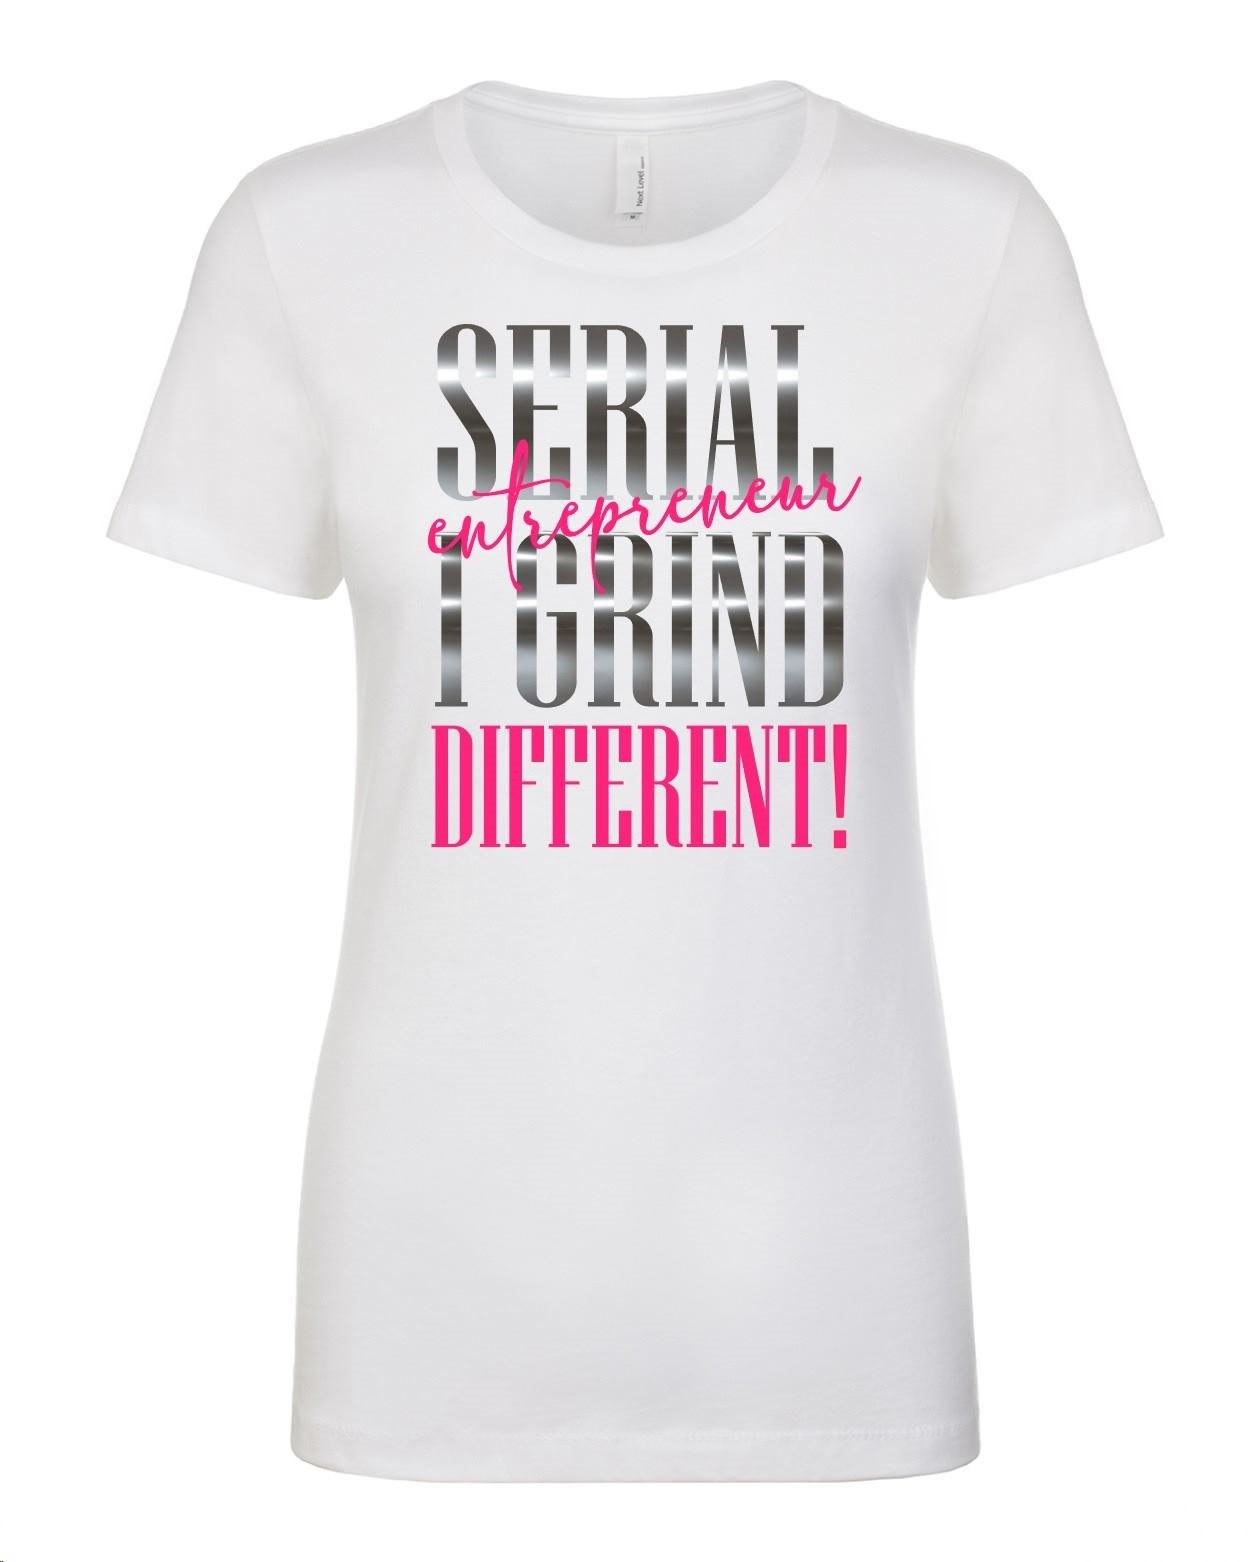 Serial Entrepreneur T-Shirt